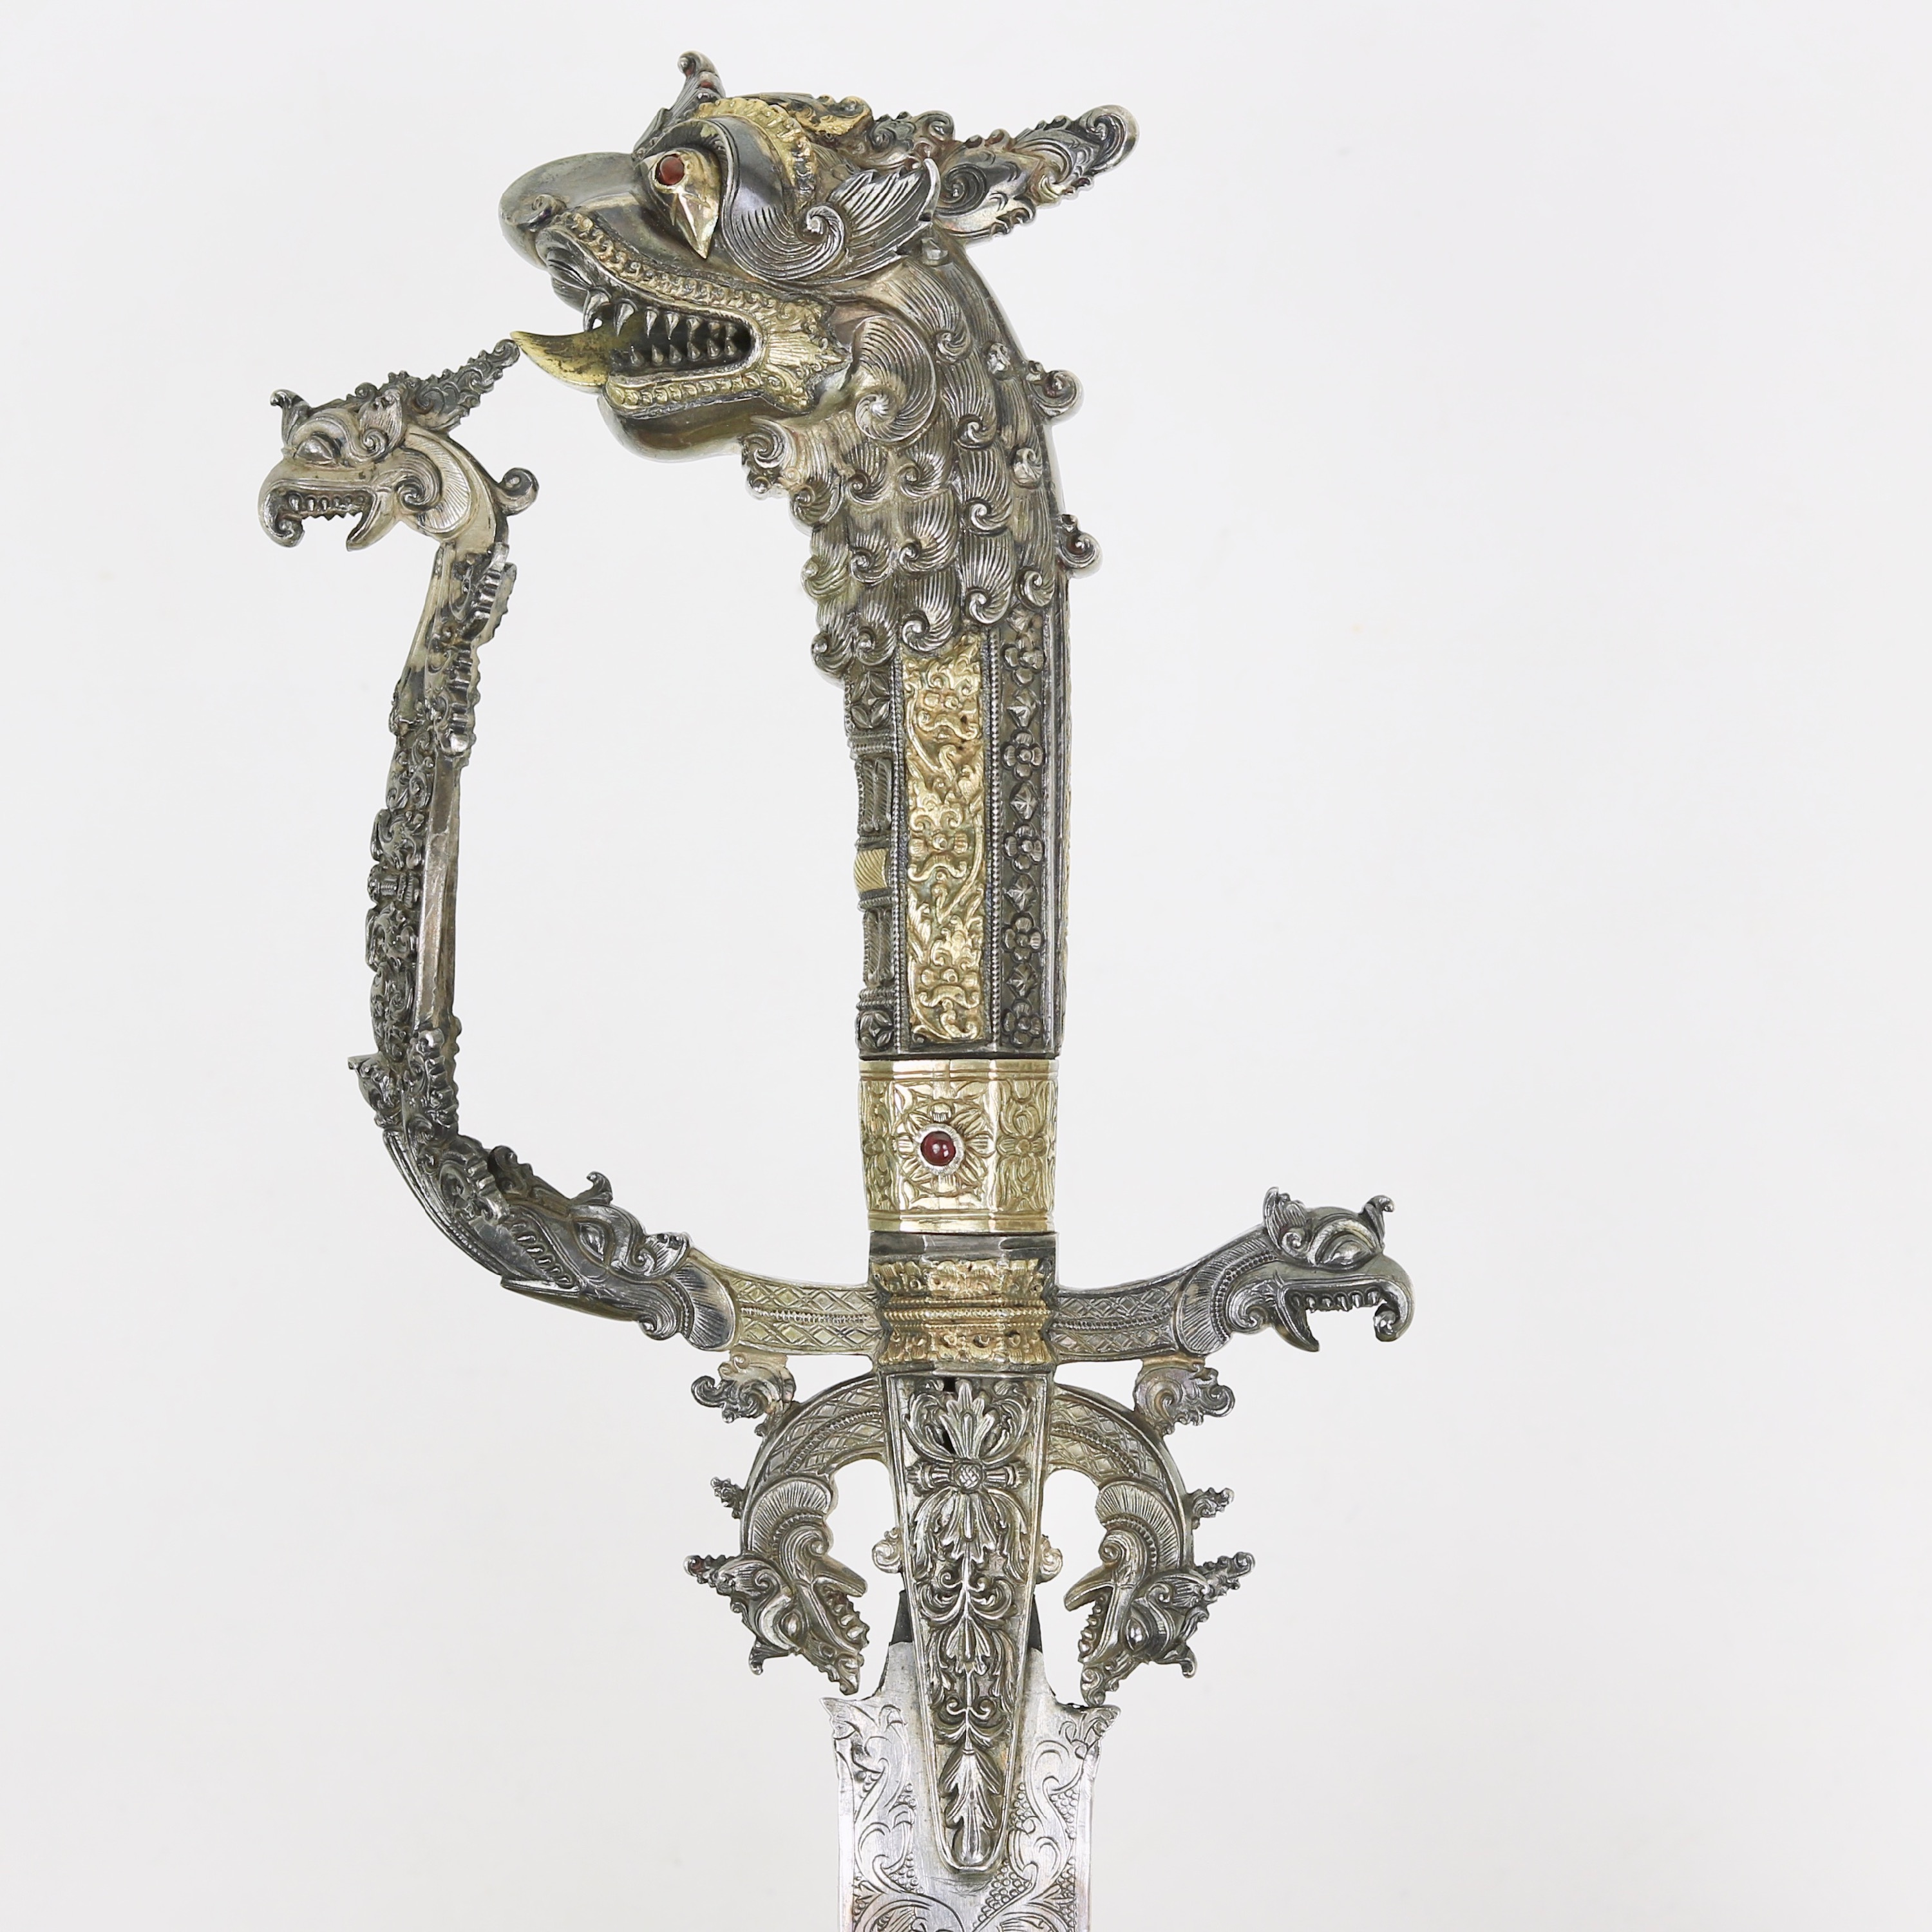 Quillons on Sinhalese sword